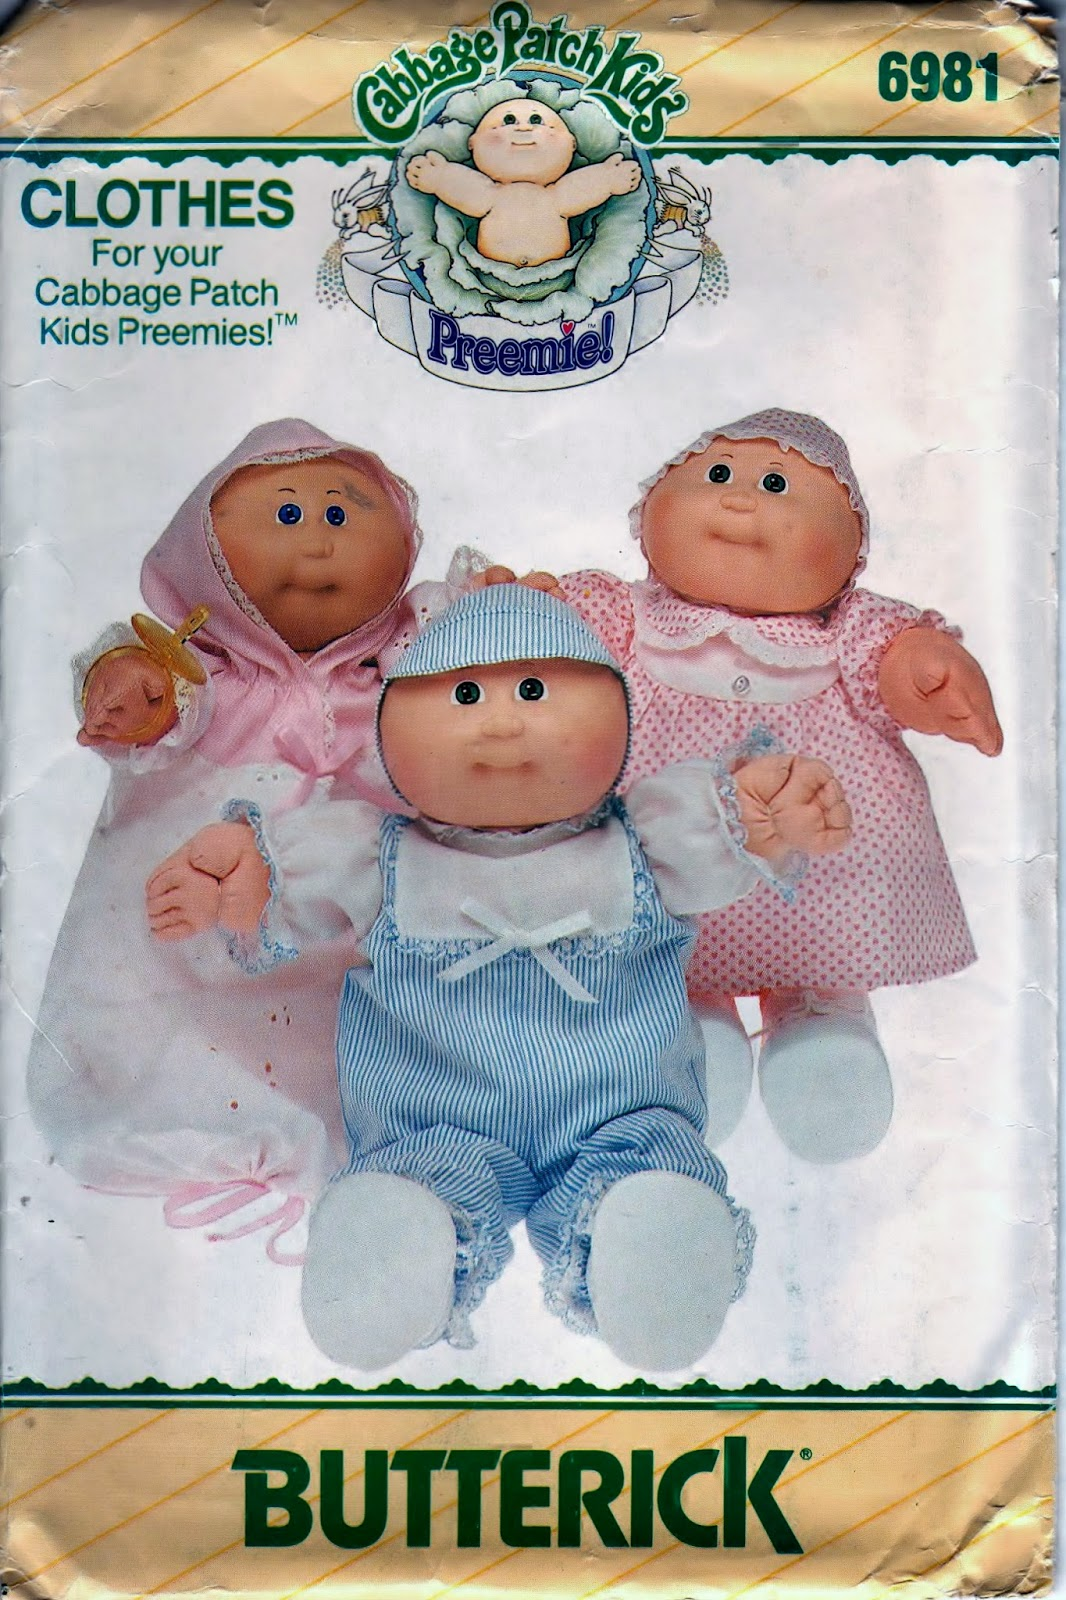 https://www.etsy.com/listing/114559237/cabbage-patch-preemie-clothes-uncut